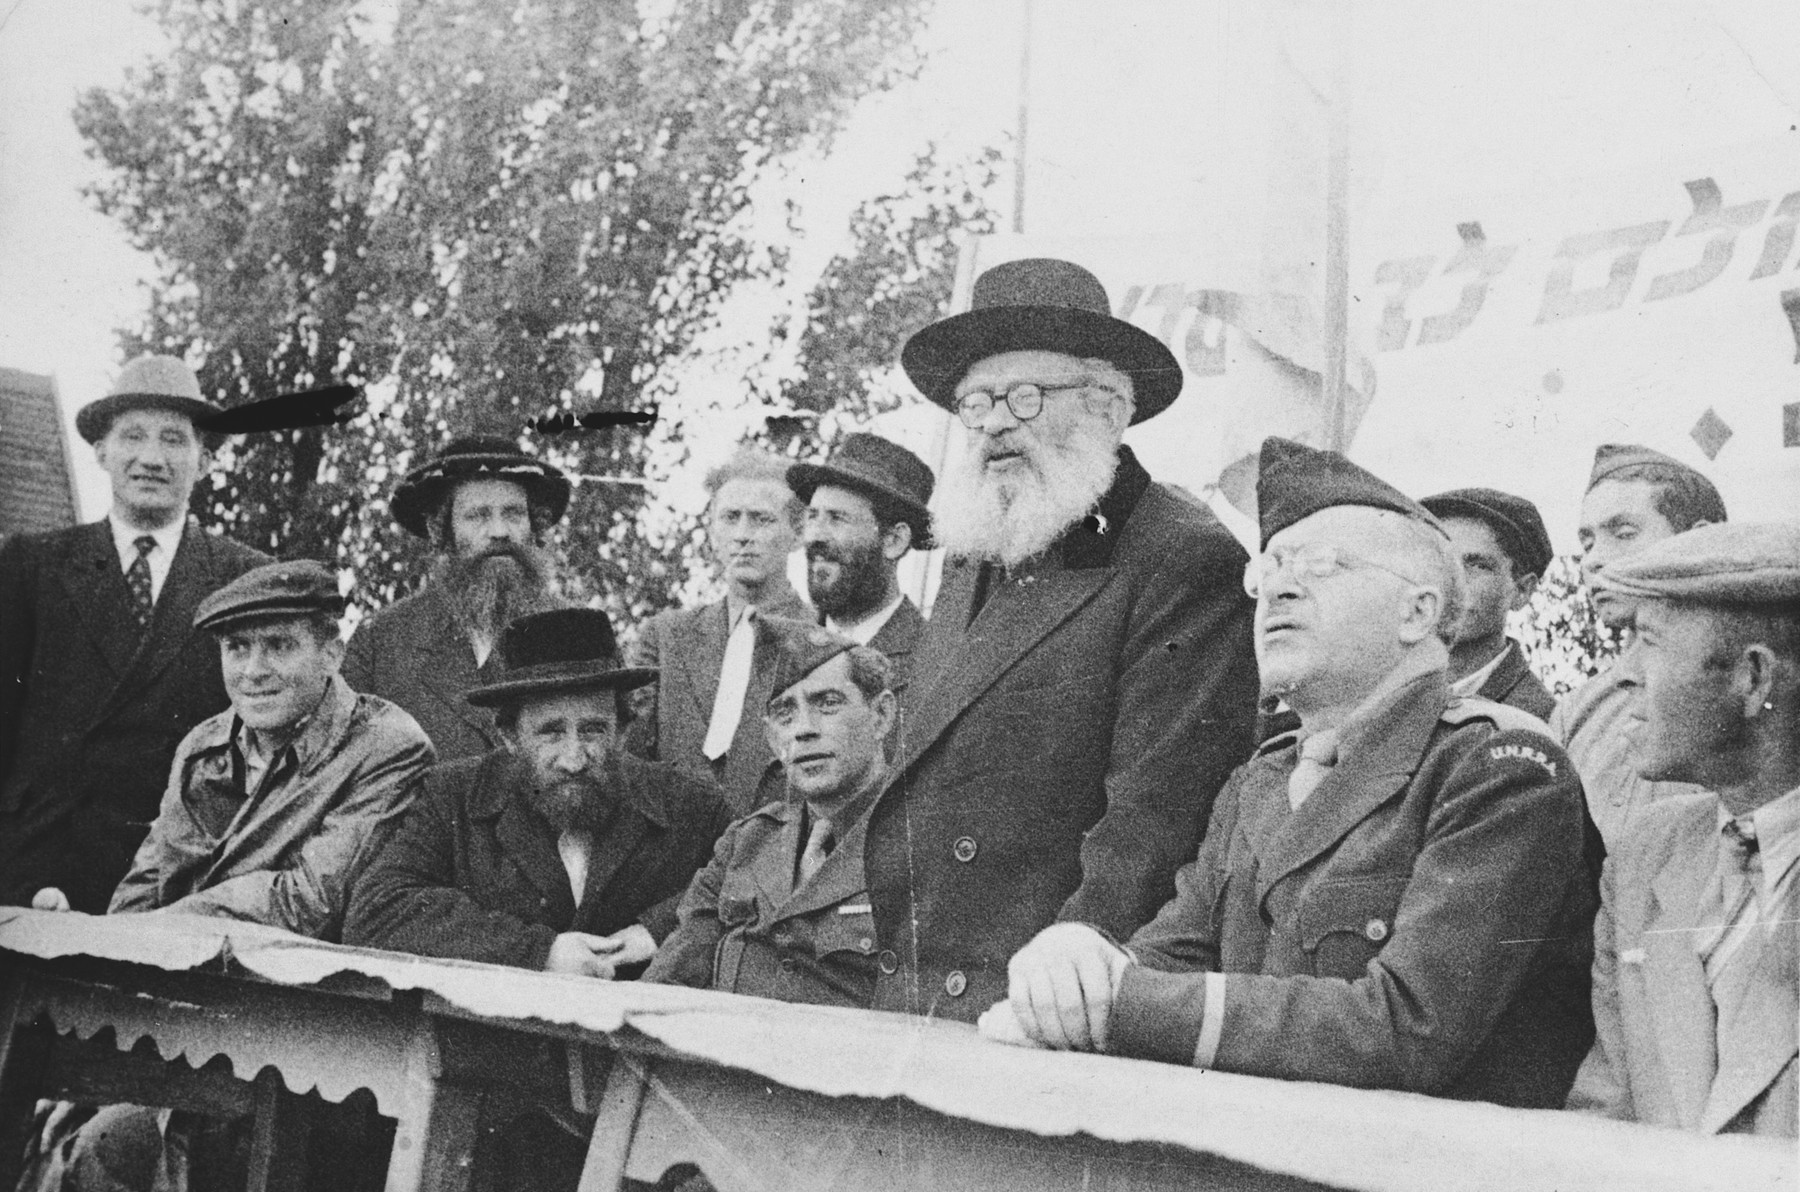 Rabbi Isaac Herzog speaks from a podium during an official visit to the Neu Freimann displaced persons' camp.